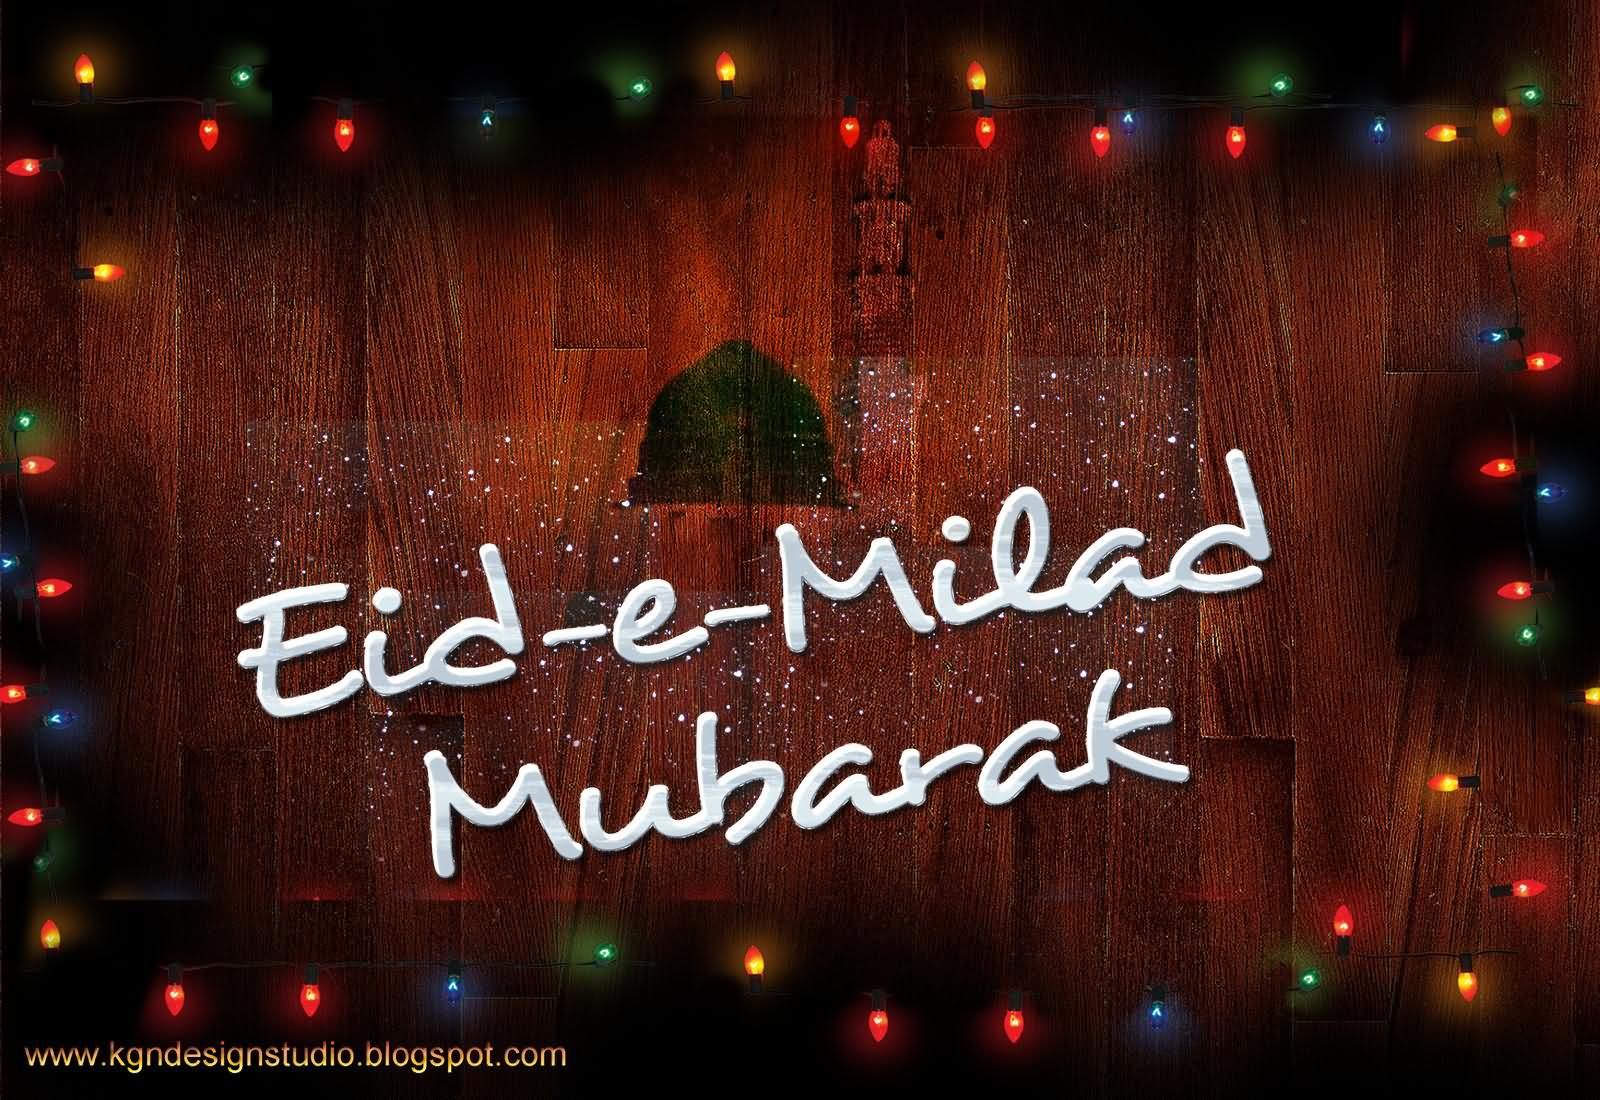 Eid E Milad Mubarak Greeting Picture